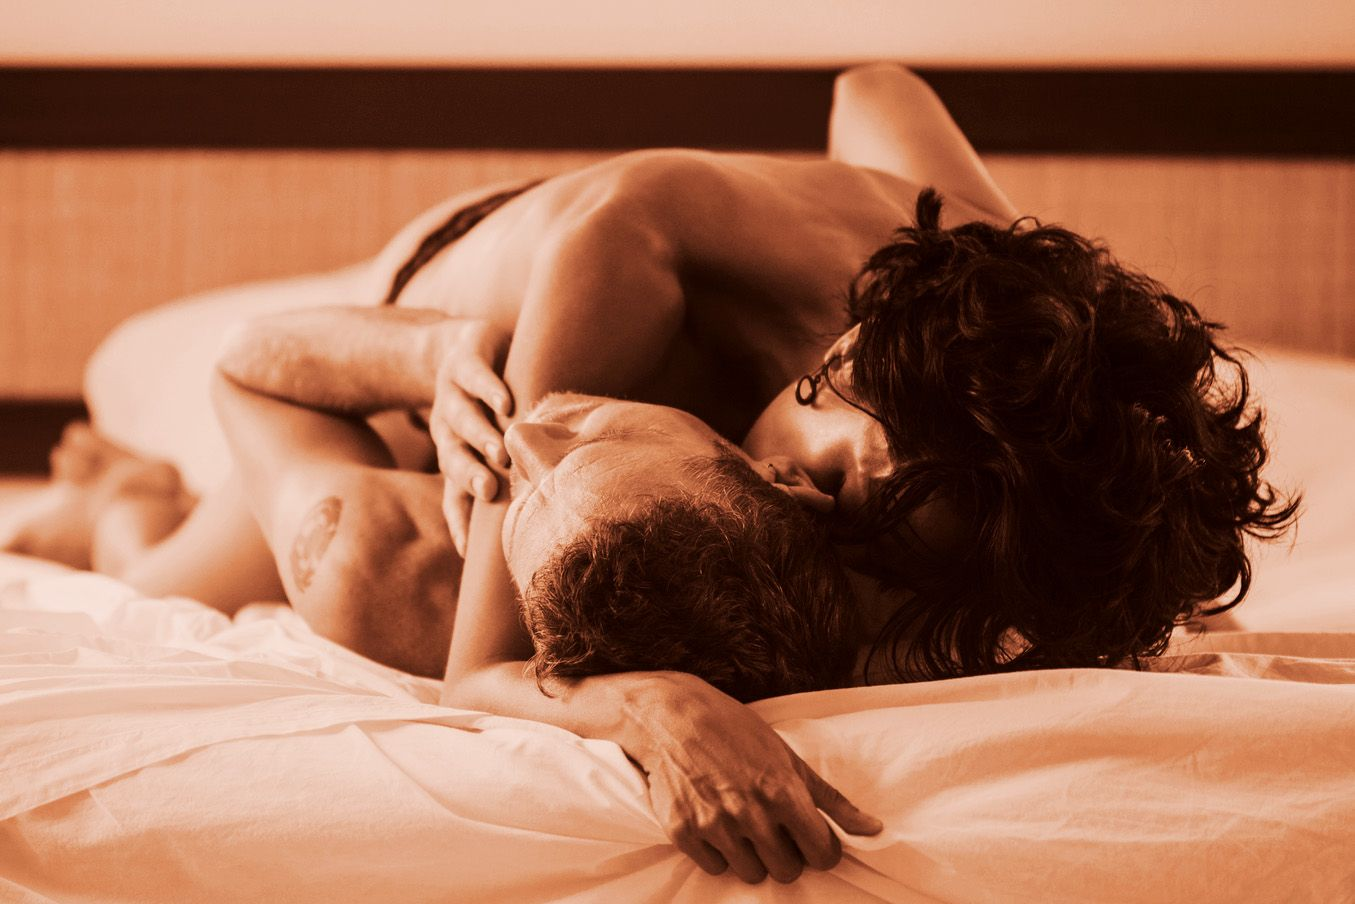 Oral sex position 69 pictures